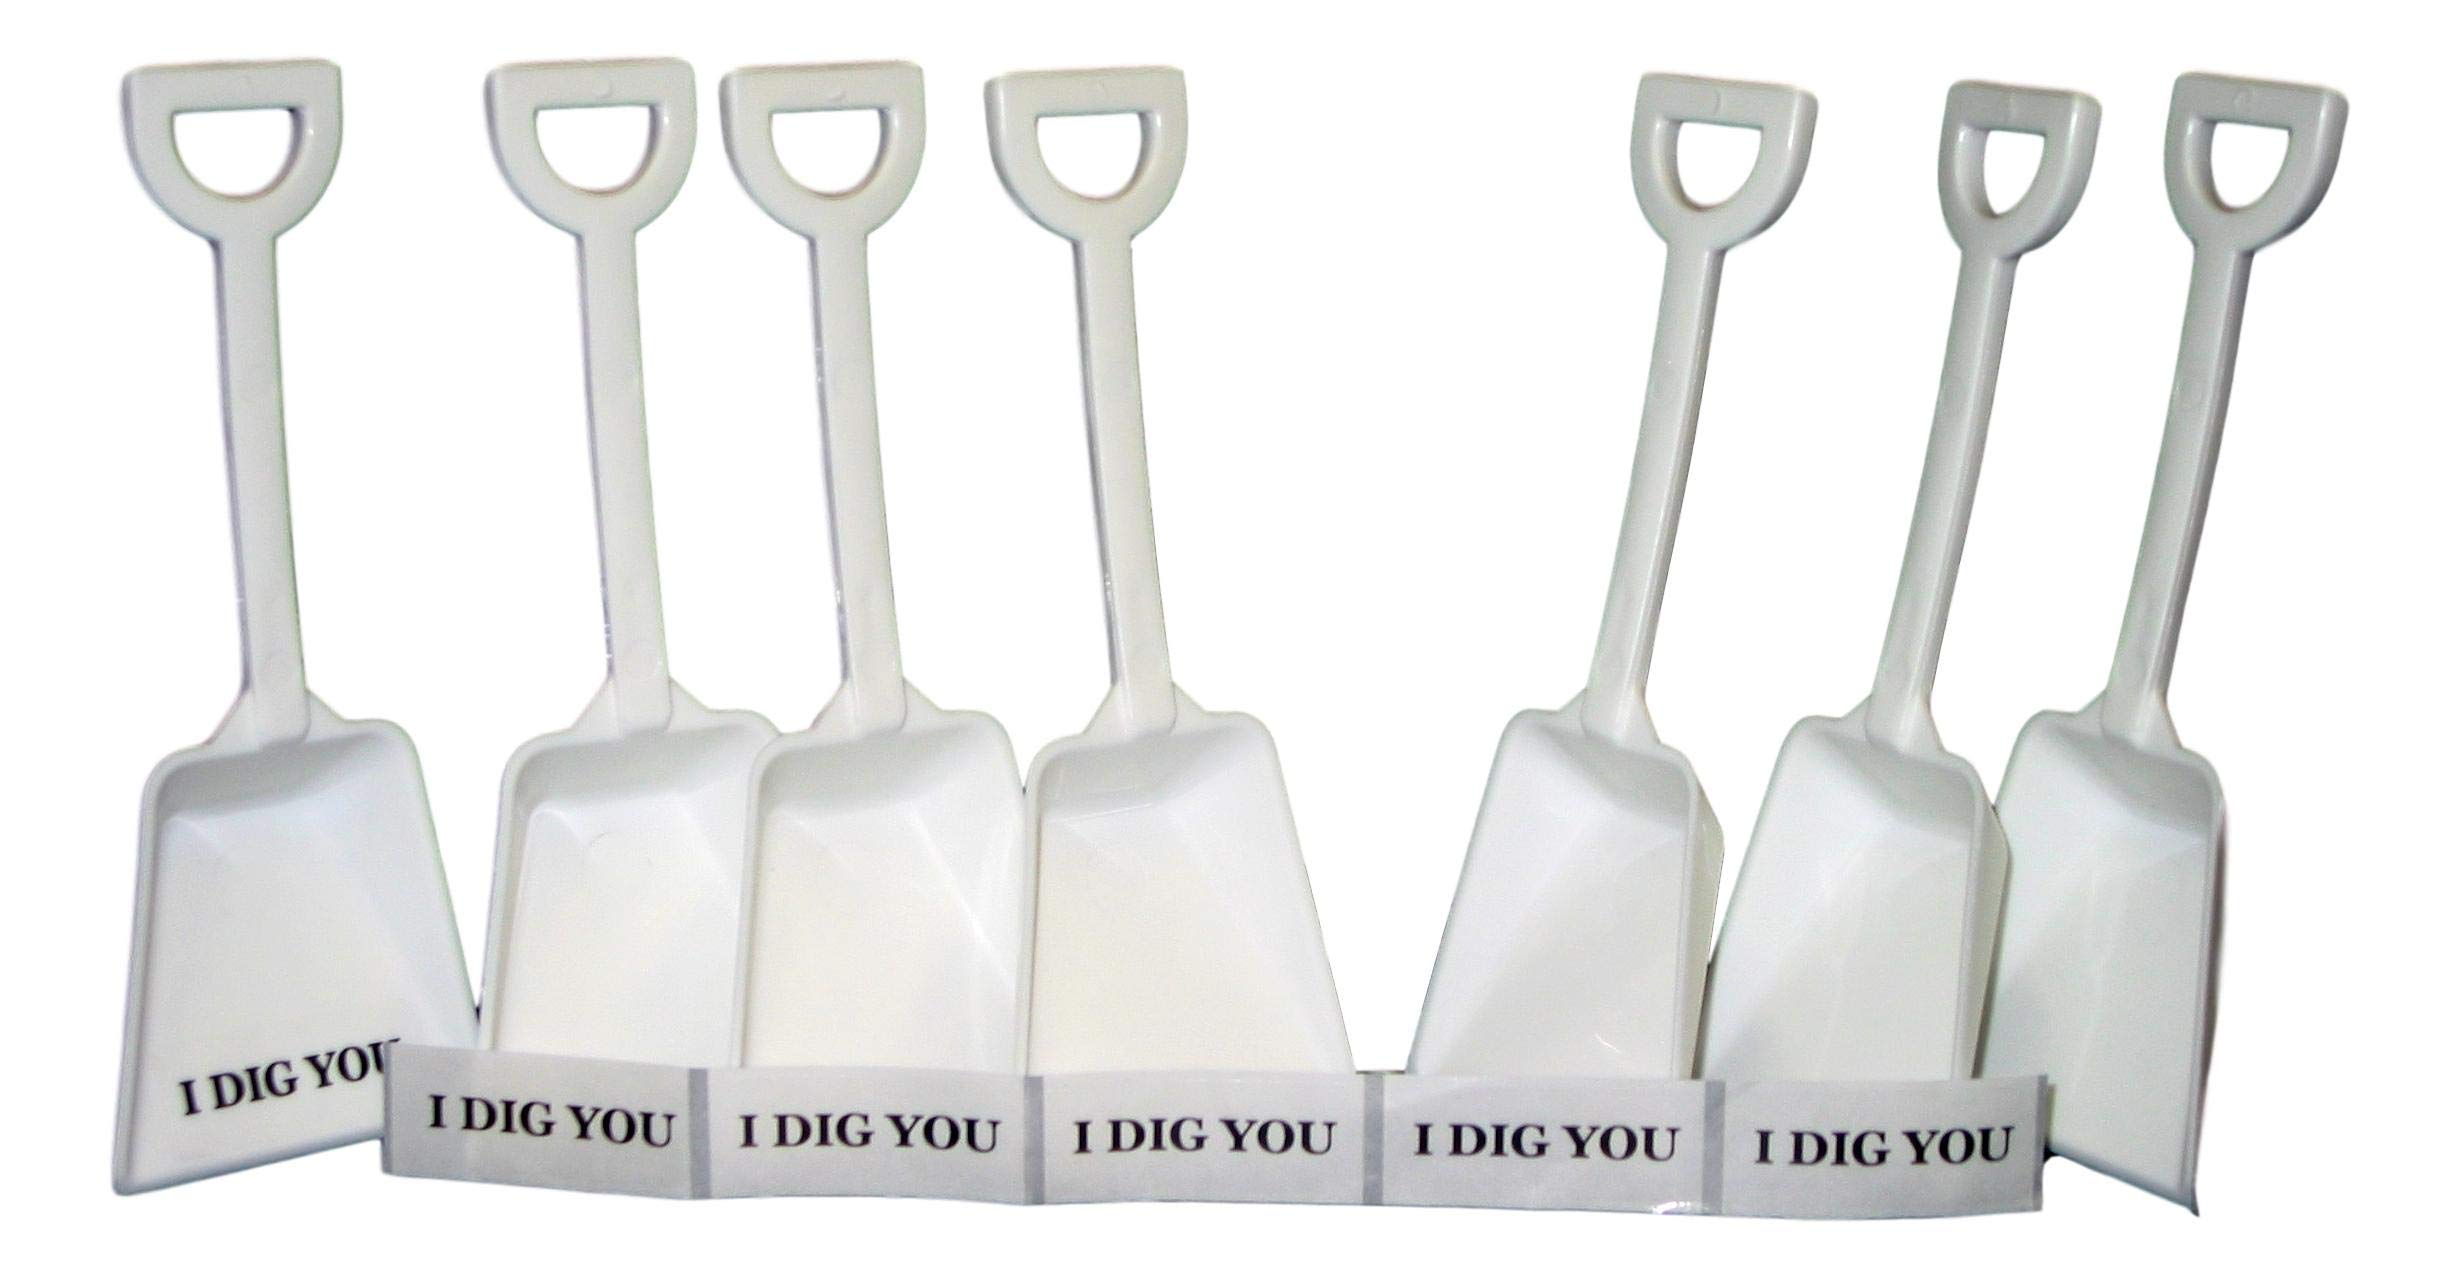 Small Toy Plastic Shovels White, 100 Pack, 7 Inches Tall, 100 I Dig You Stickers by Jean's Plastics (Image #1)